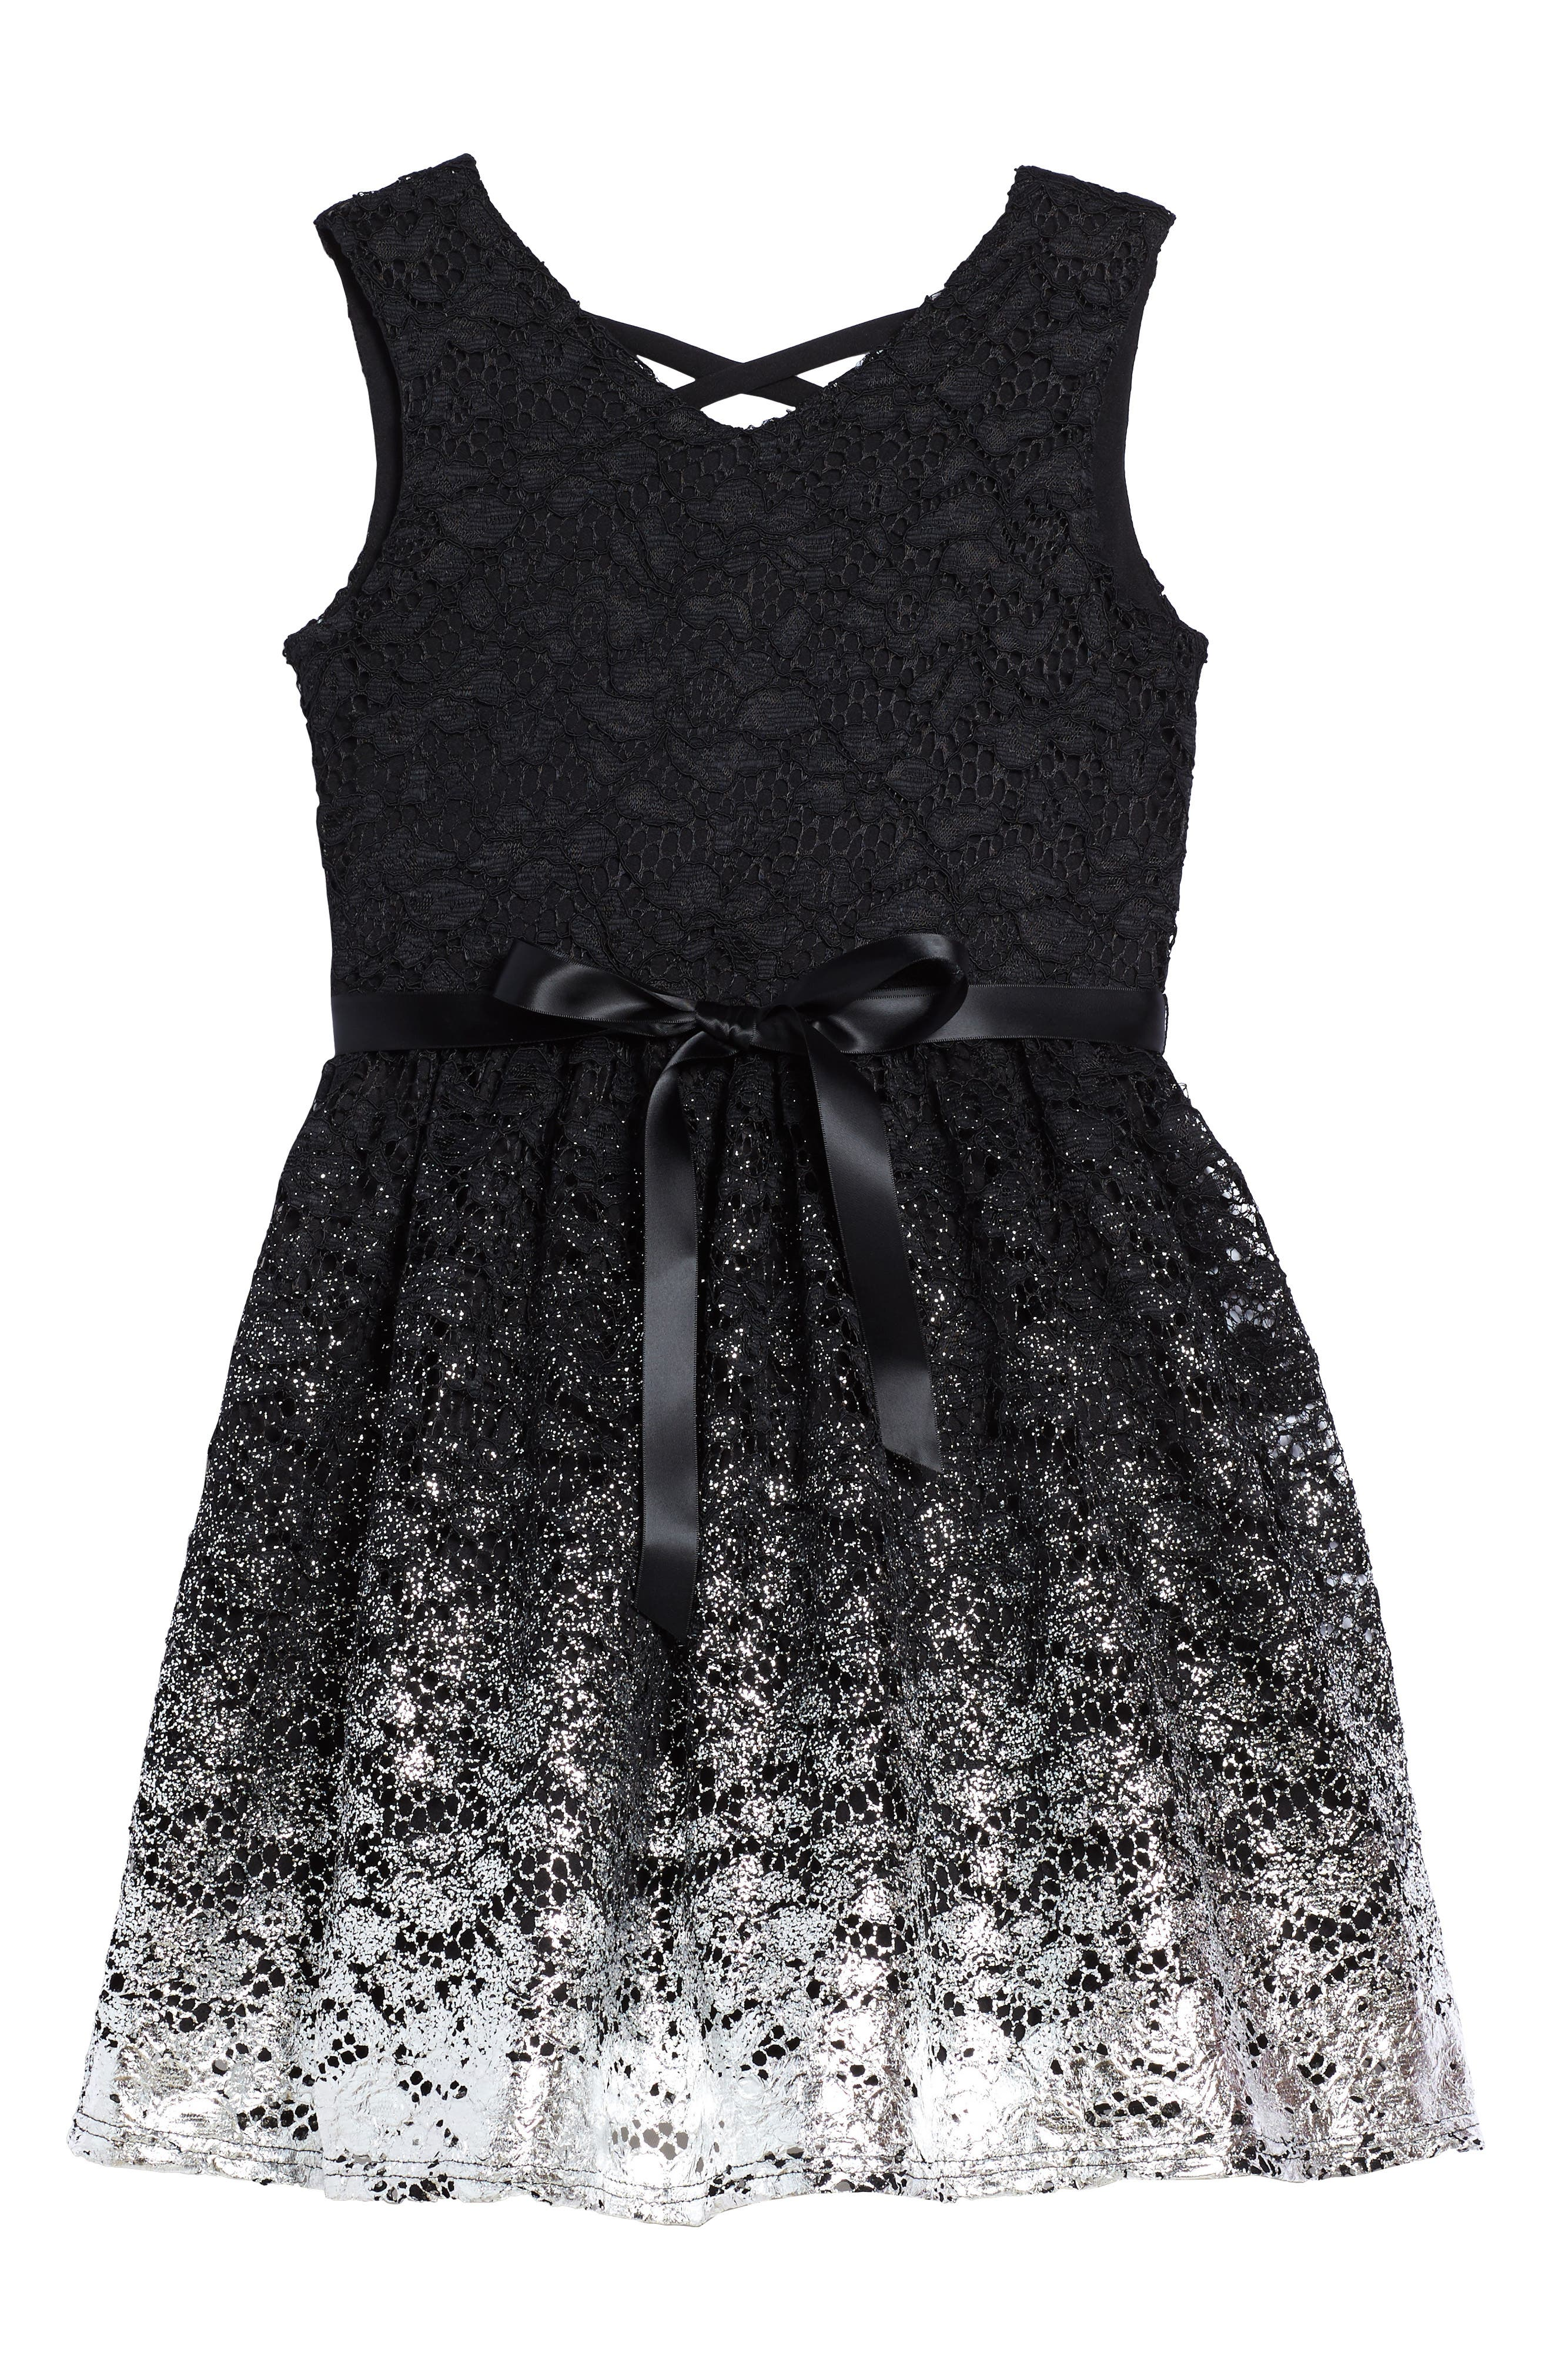 Alternate Image 1 Selected - BLUSH by Us Angels Sleeveless Lace Dress (Big Girls)